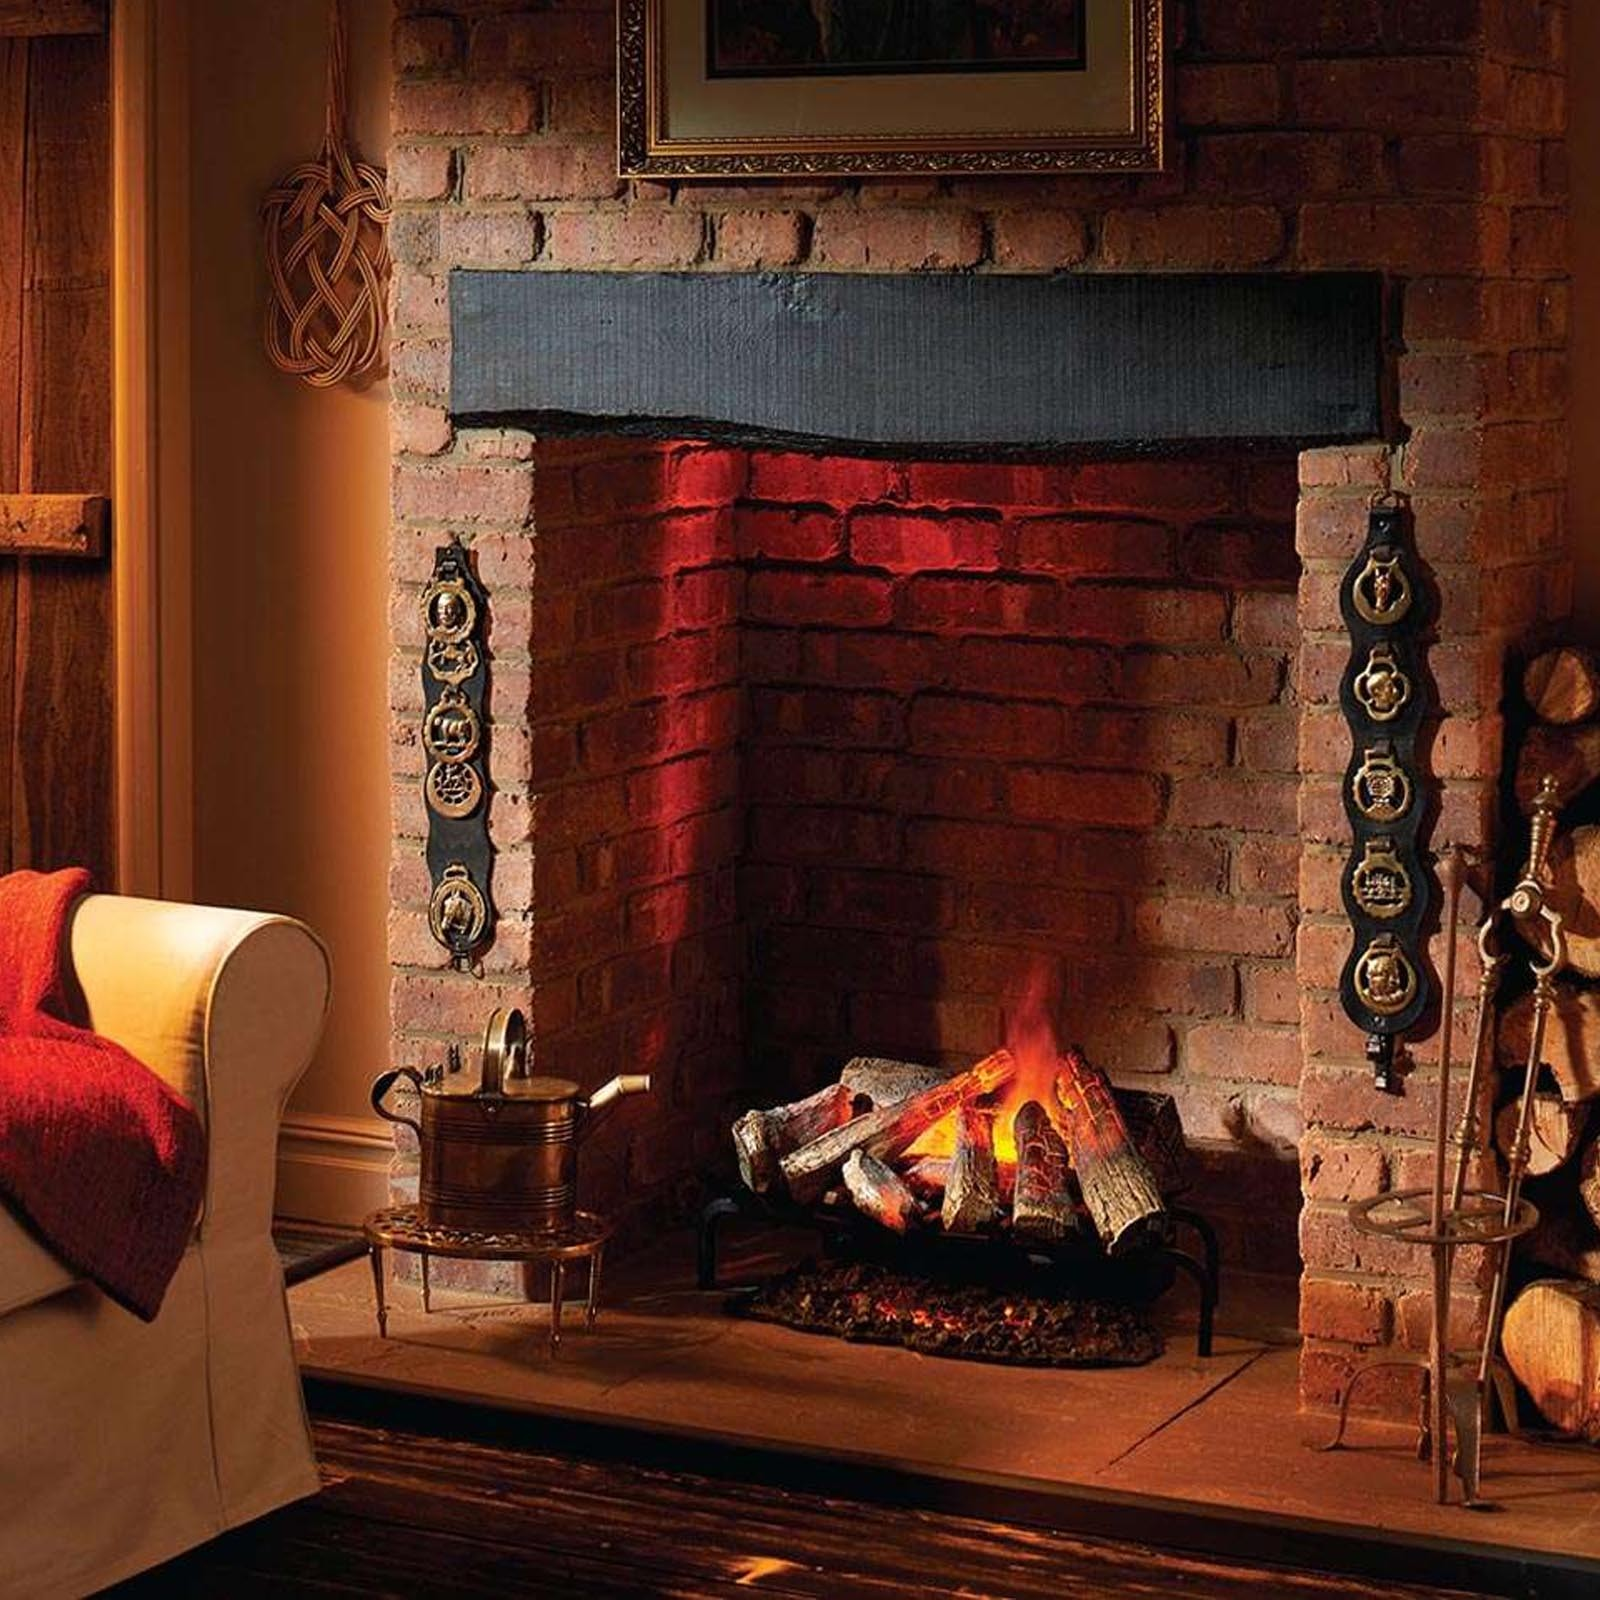 electric panel heaters uk with Dimplex Silverton Opti Mystr Electric Fire Basket on Gallery Brompton Limestone Fireplace Includes Crown Cast Iron Arch moreover Multivan 2 moreover Valor Blenheim Slimline Black Gas Fire together with Electric Panel Heater Splashproof Adax Norel Bathroom Safe T er Proof further Elgin Hall Farnham Electric Fireplace Suite.